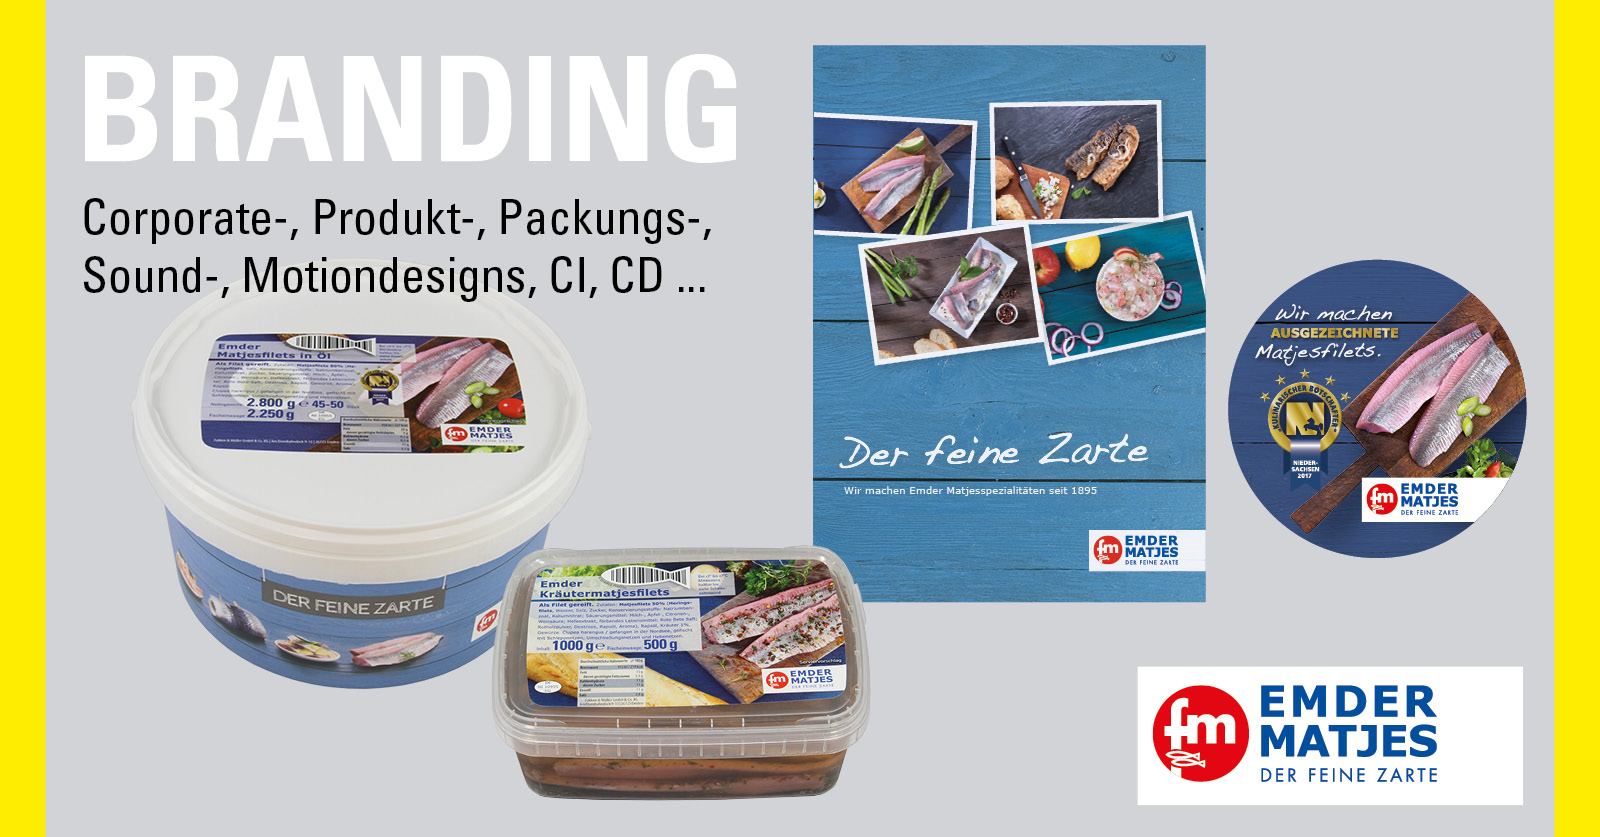 Media Struktur - Branding | Corporate-, Produkt-, Packungs-, Sound-, Motiondesigns, CI, CD